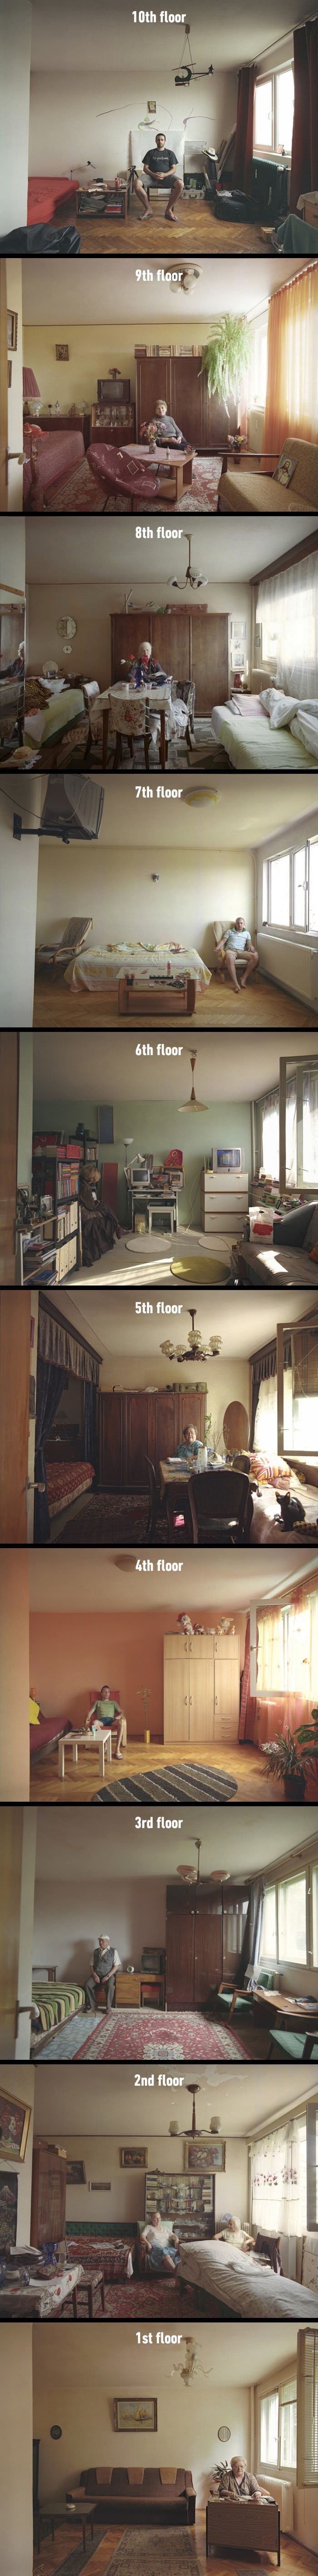 These Fascinating Photographs Show You How Different People Live In Identical Apartments (By Bogdan Gîrbovan)